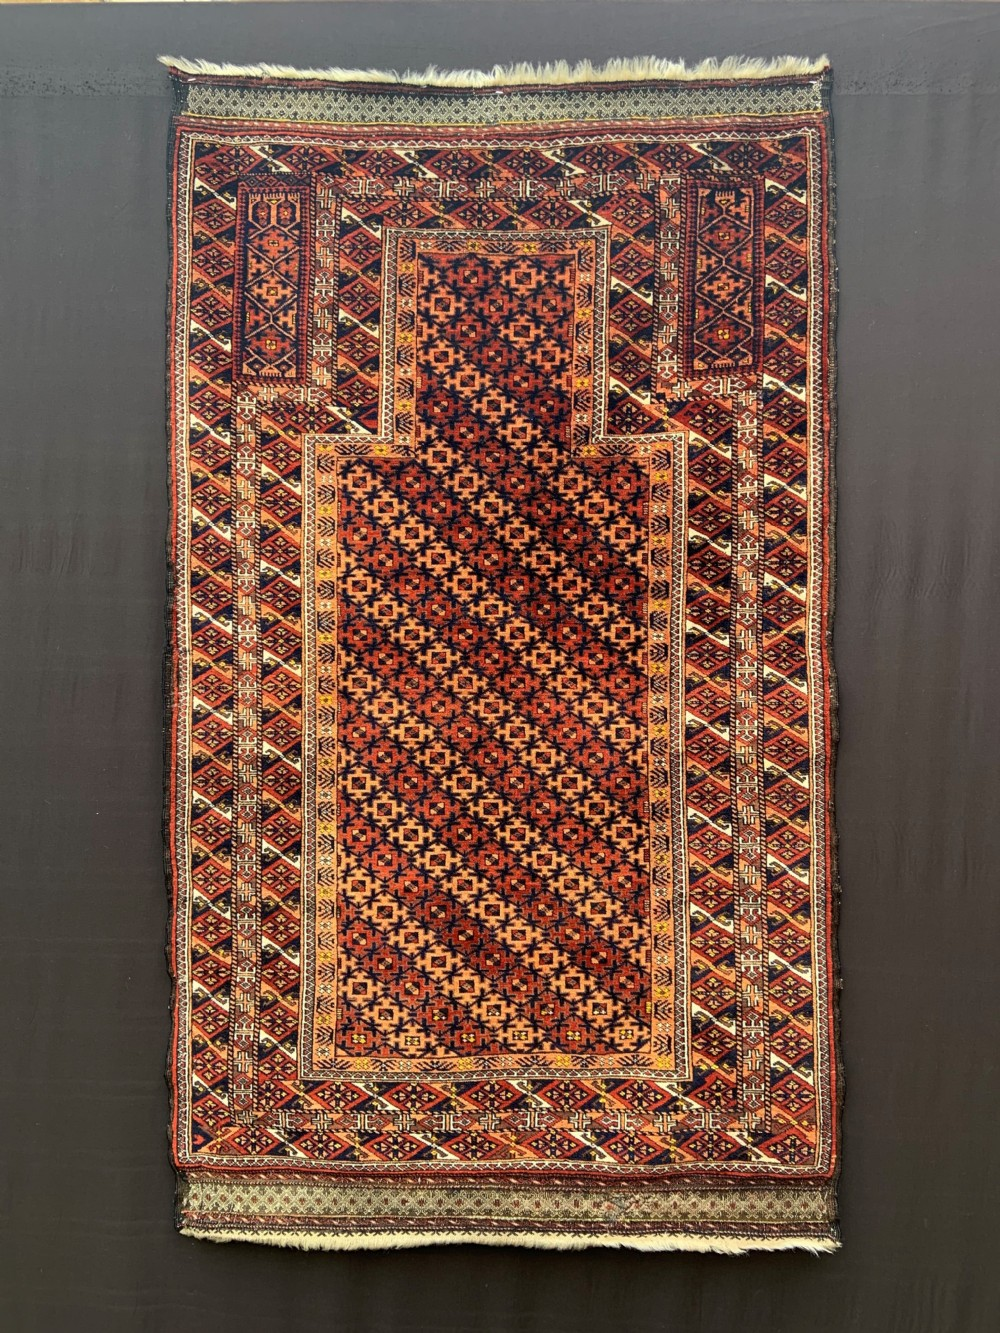 antique prayerrug timuri salar khani tribe borderlands of eastern persiawestern afghanistan